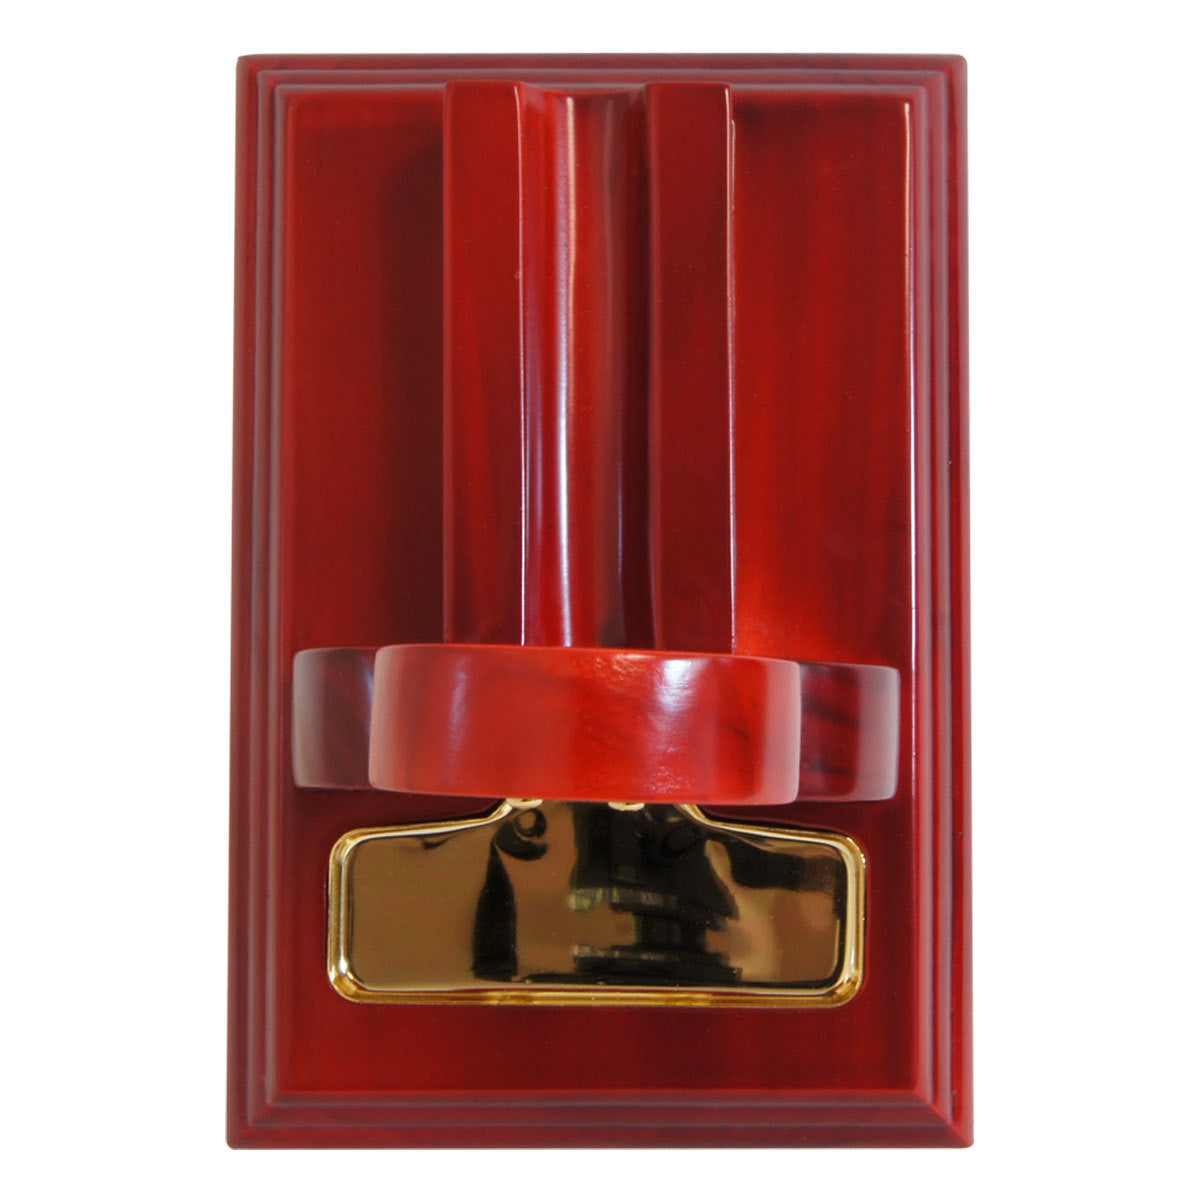 Guillotine Mesa Fina Red Rojo Cherry Wood Gold Tabletop Cigar Cutter - Cigar boulevard